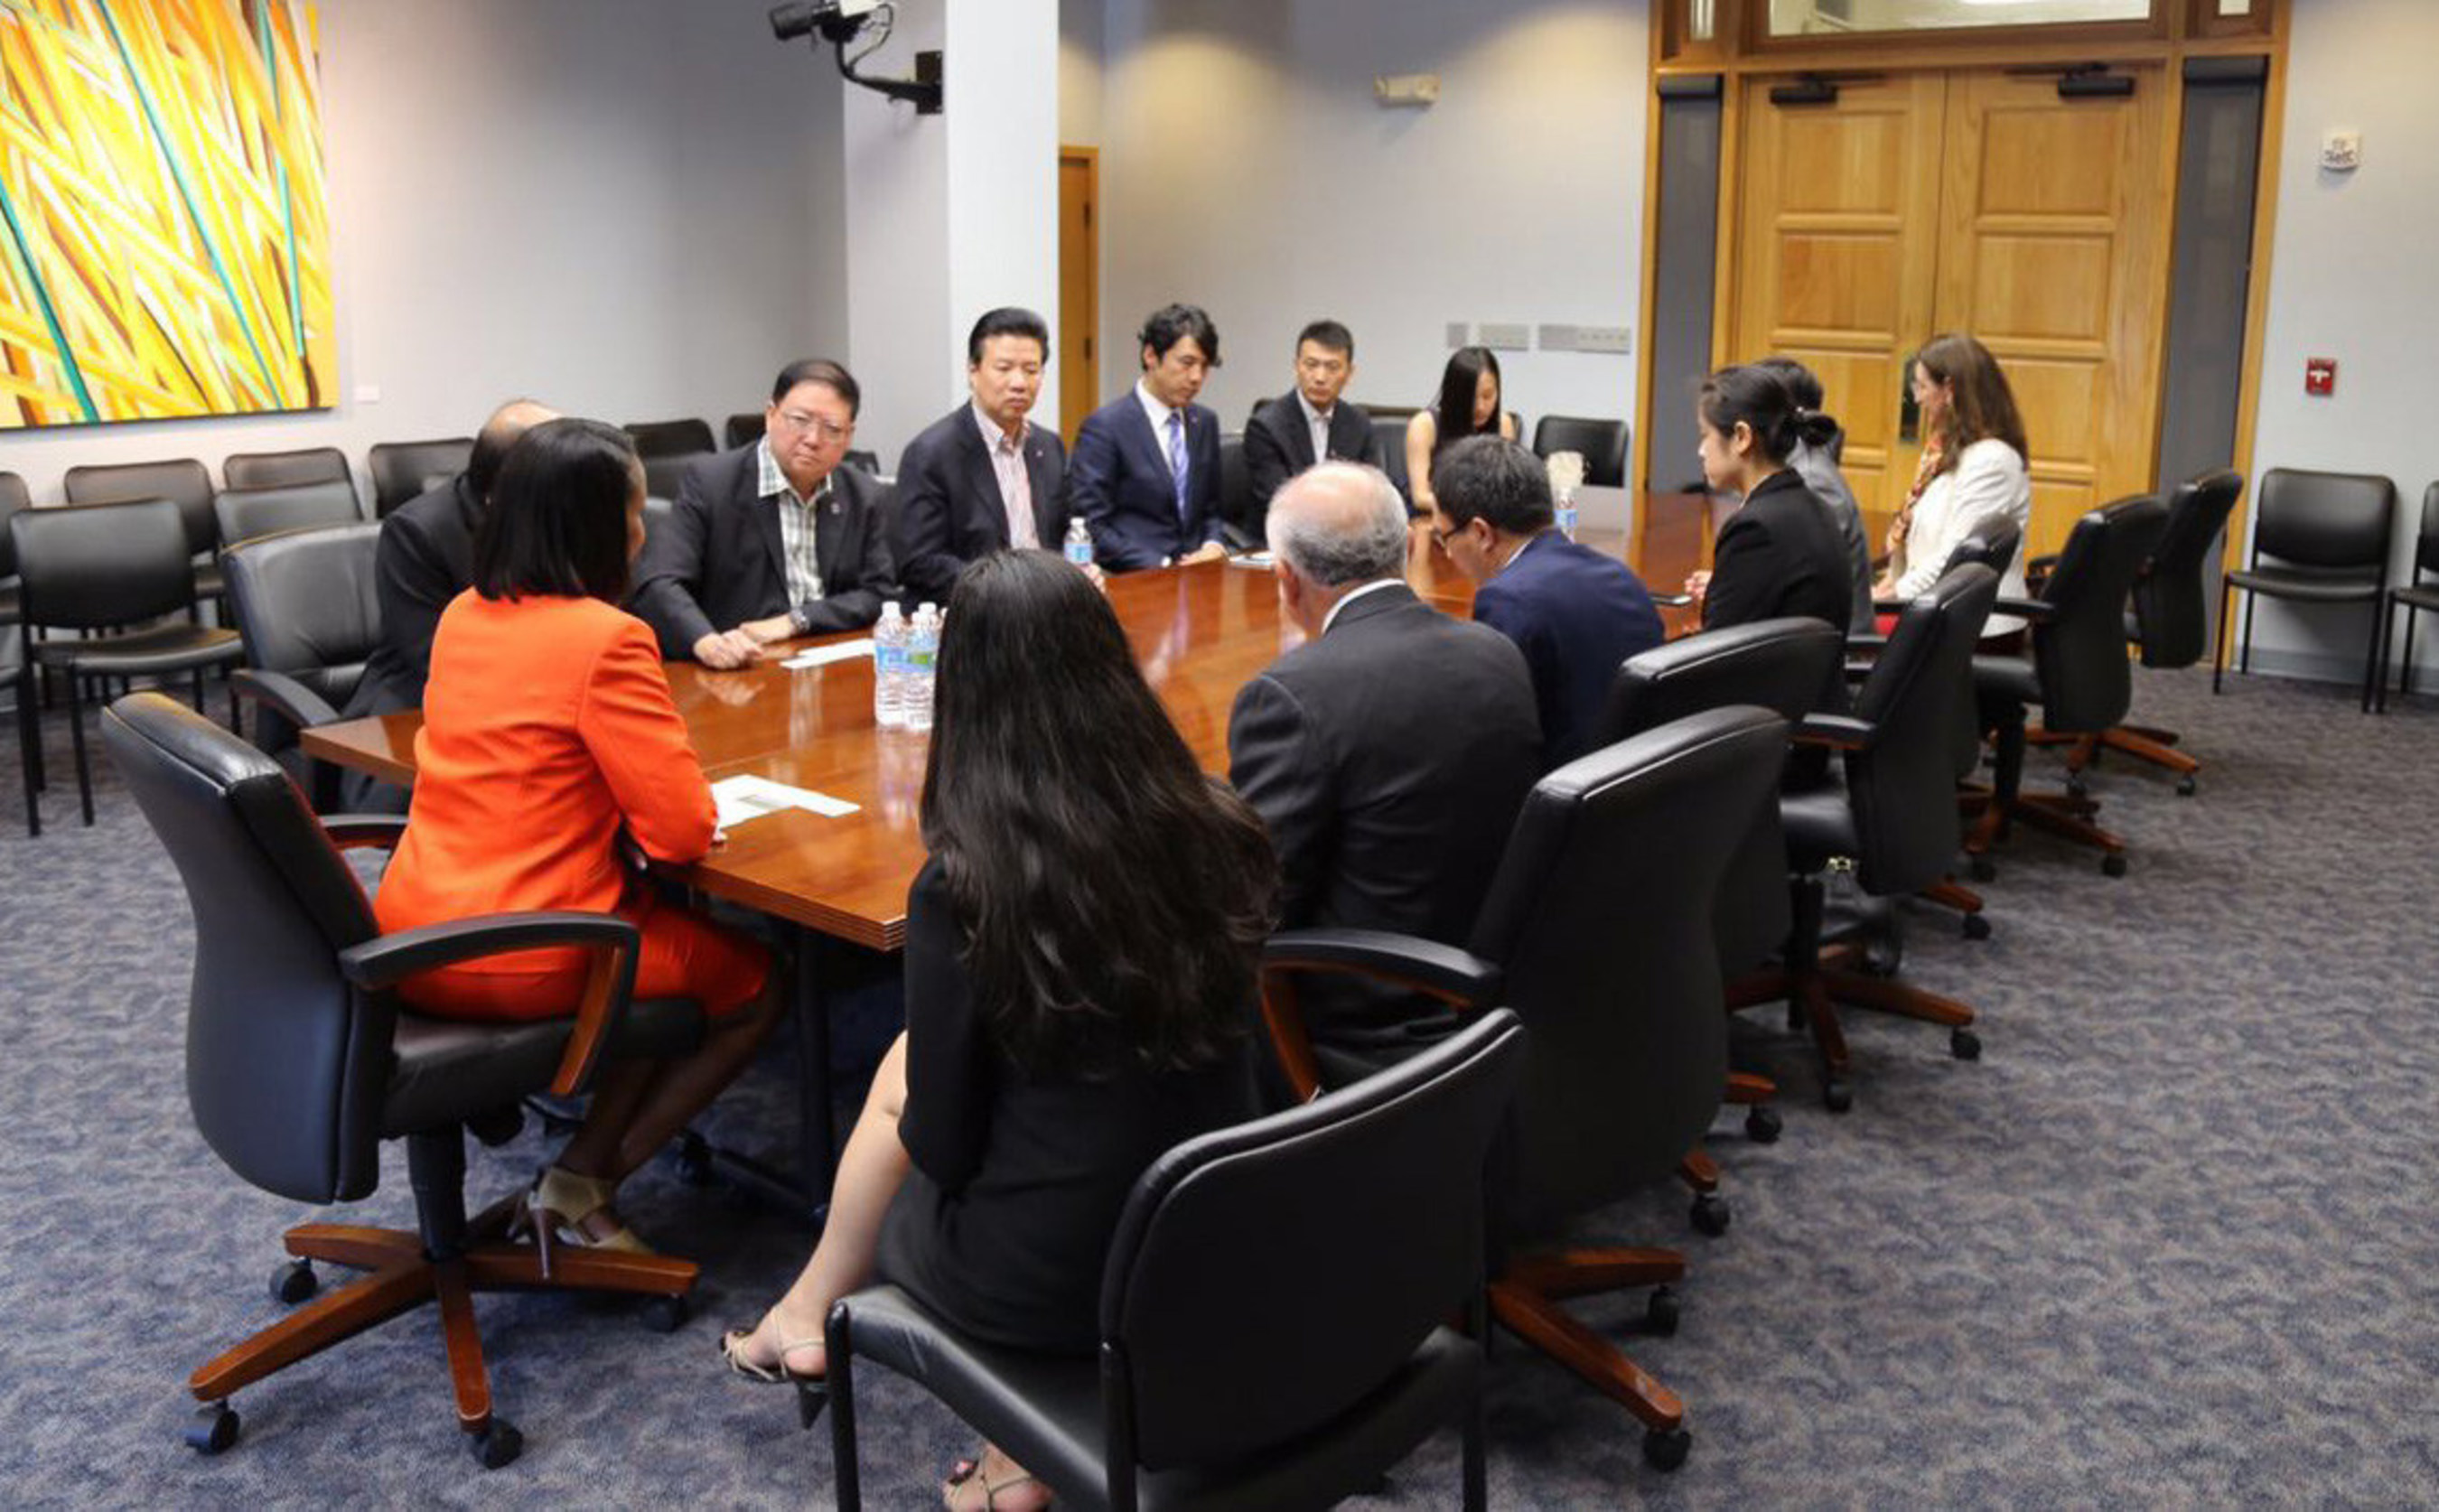 Members of the delegation discuss their projects with Mayor of San Antonio Ivy R. Taylor